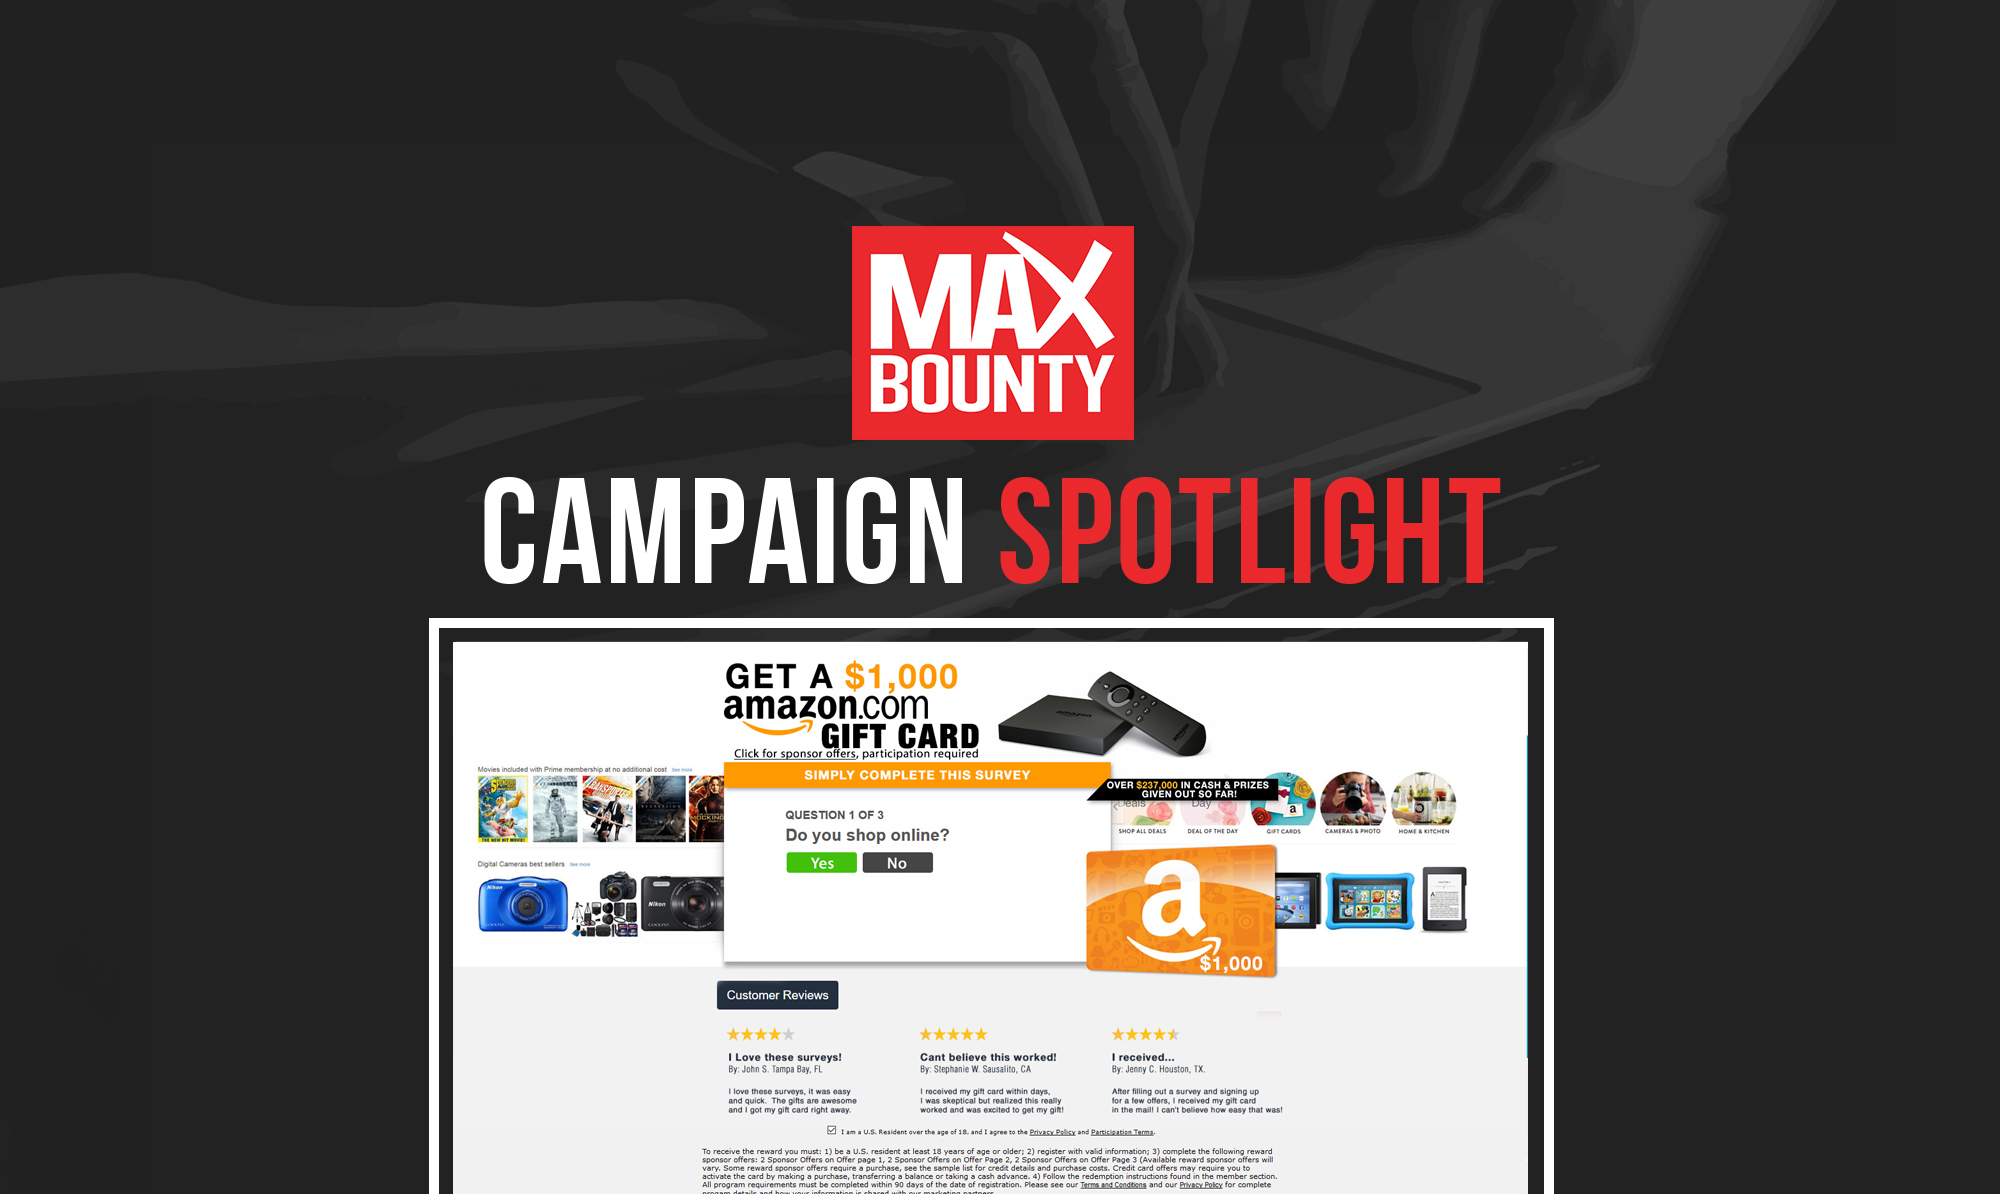 Campaign Spotlight: Essential Sweepstakes